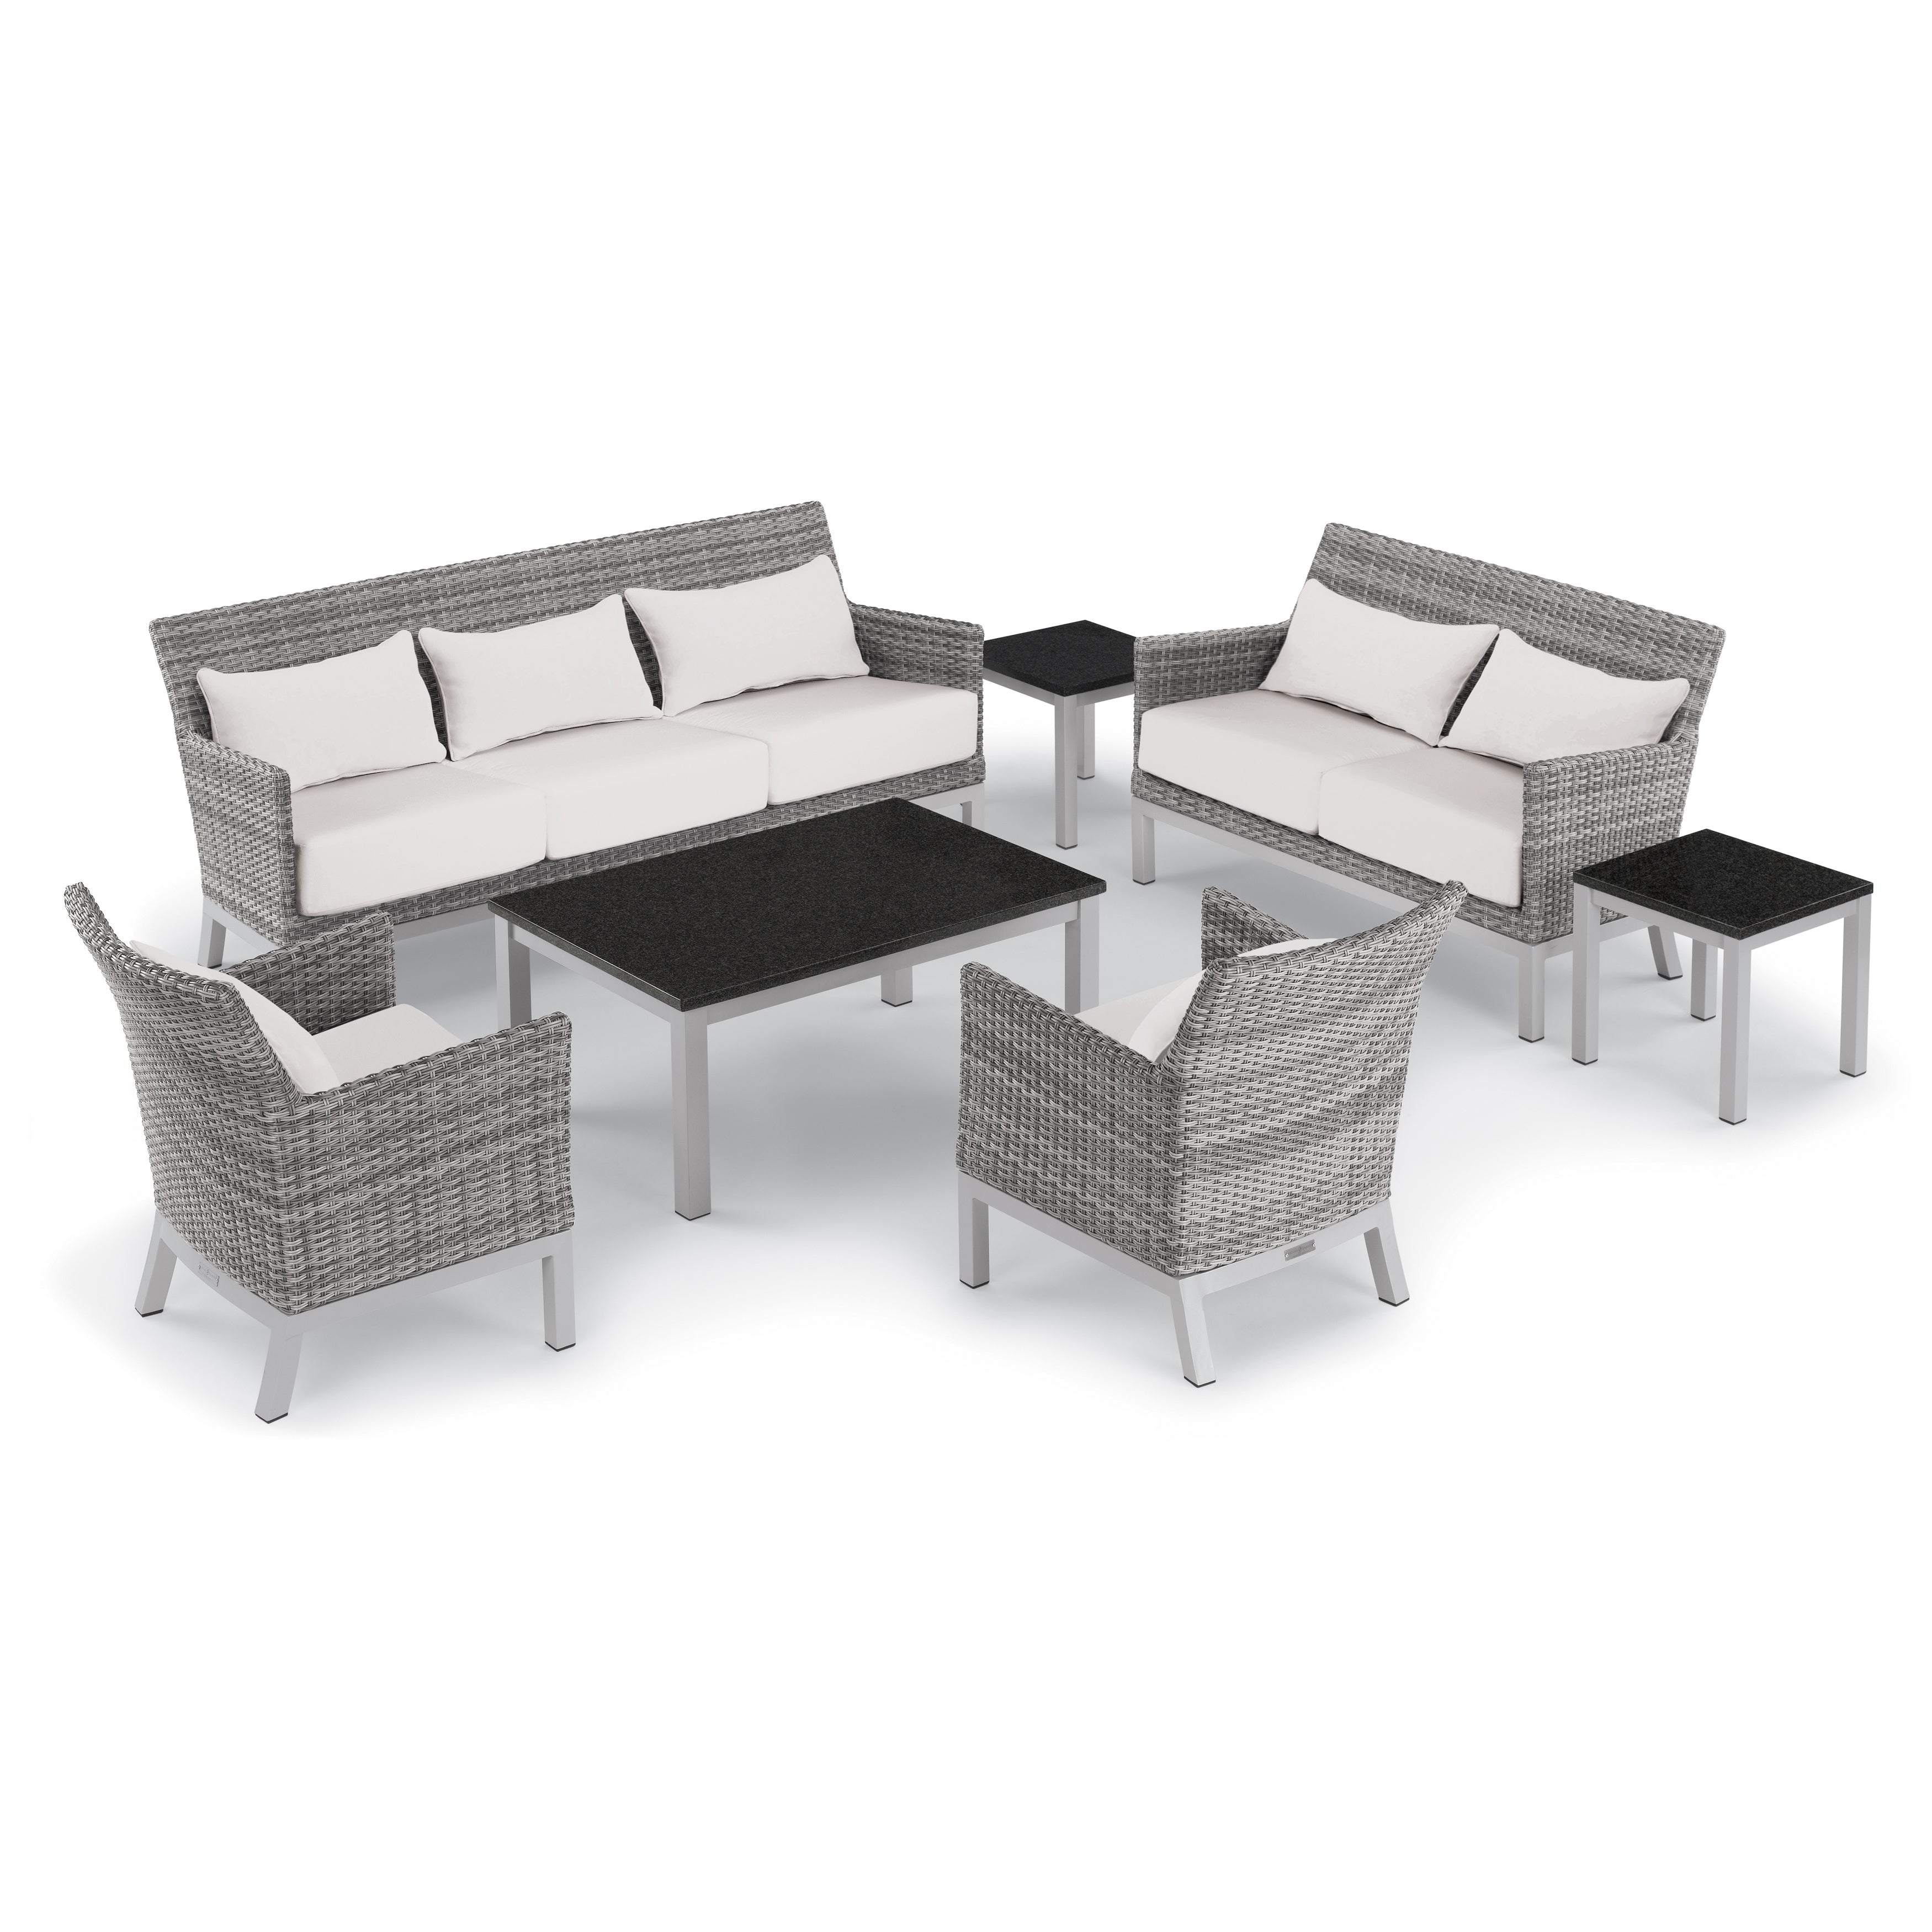 Oxford Garden Argento 7 Piece Resin Wicker Lounge Travira Lite Core Charcoal Table Set Eggshell White Cushions Pillows Free Shipping Today